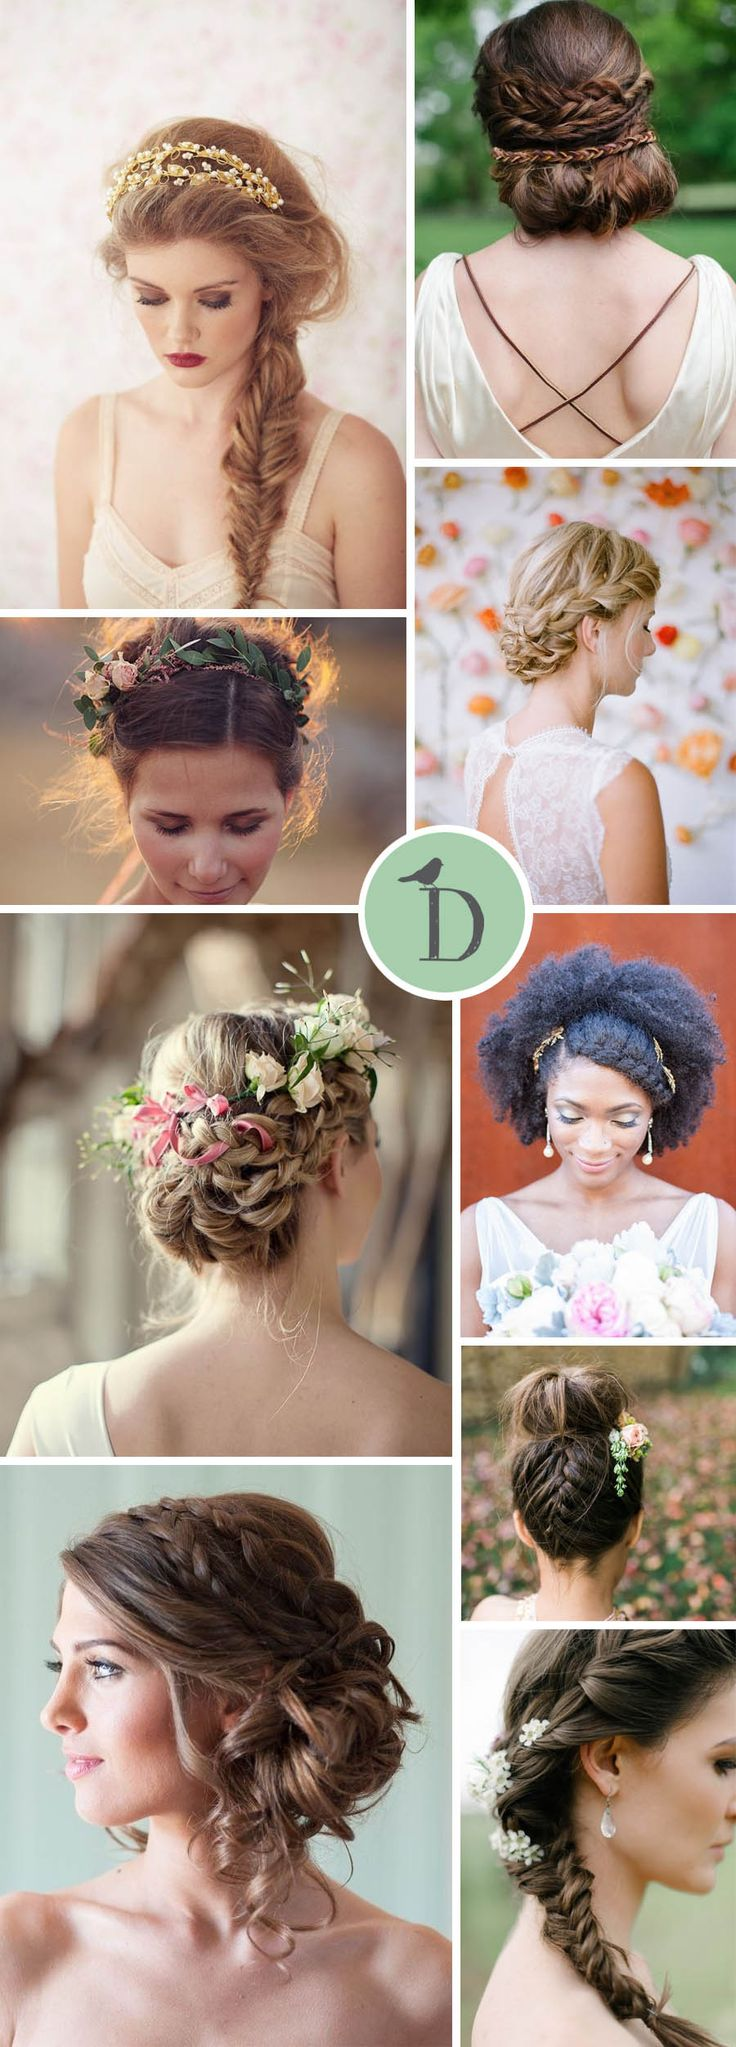 BEAUTIFUL BRIDAL BRAIDS I am such a fan of braids and plaits in bridal hairstyles. They can be polished and chic, or boho and romantic. Chunky side fishtail braids are a simple style to go for, and lo(Prom Hair Fishtail)